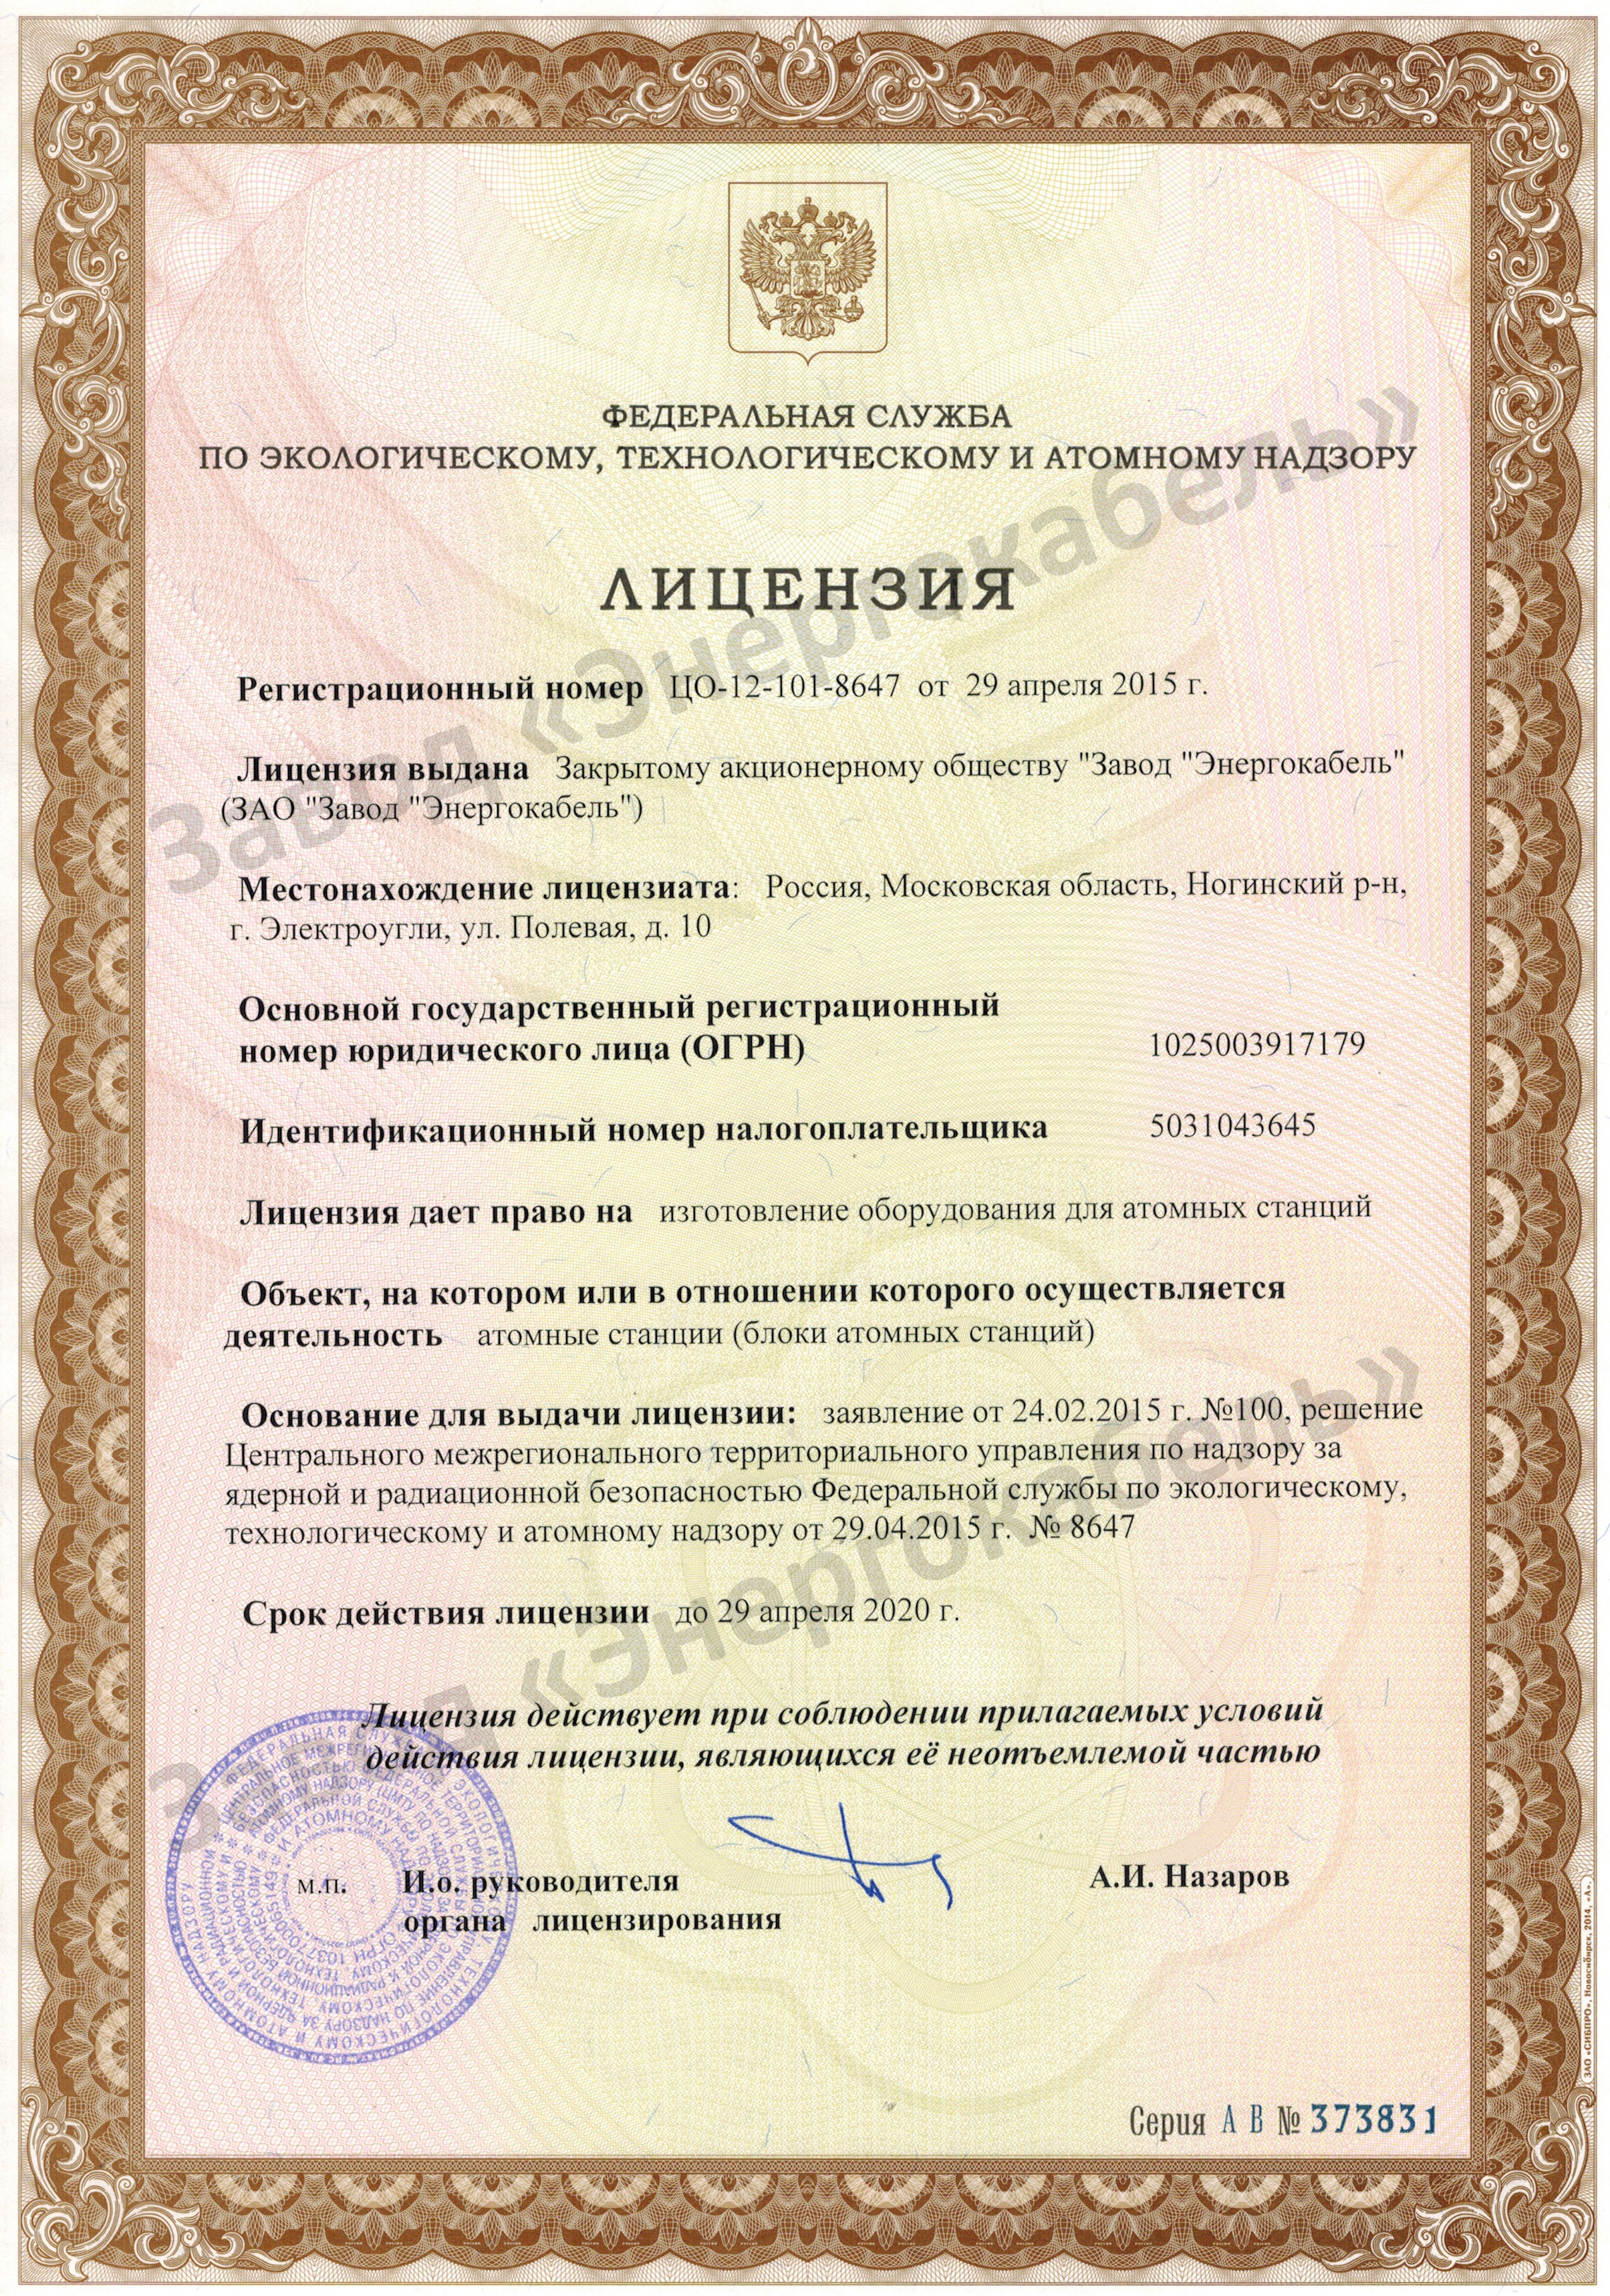 License for the right to manufacture the equipment for nuclear power plants No. ЦО-12-101-8647 dated by  04/29/2015